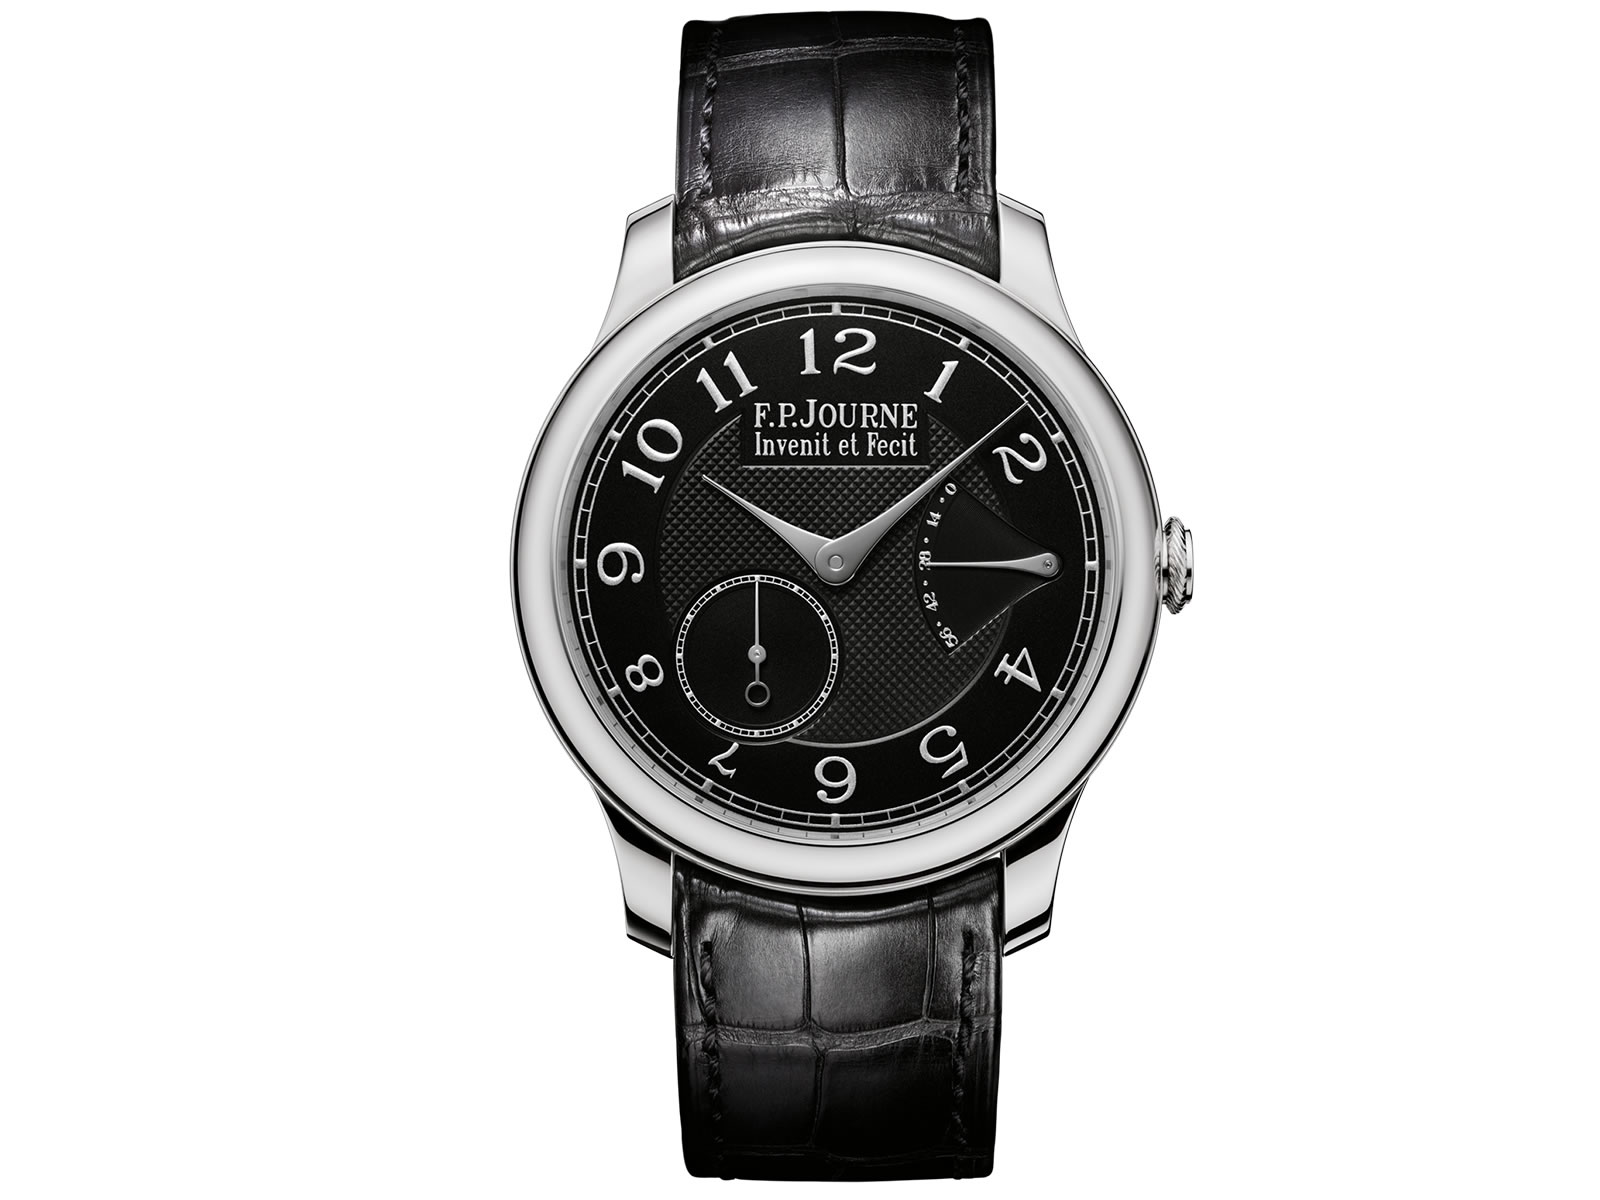 f-p-journe-black-labef-p-journe-black-laber-collection-chronometre-souverain--collection-chronometre-souverain-.jpg